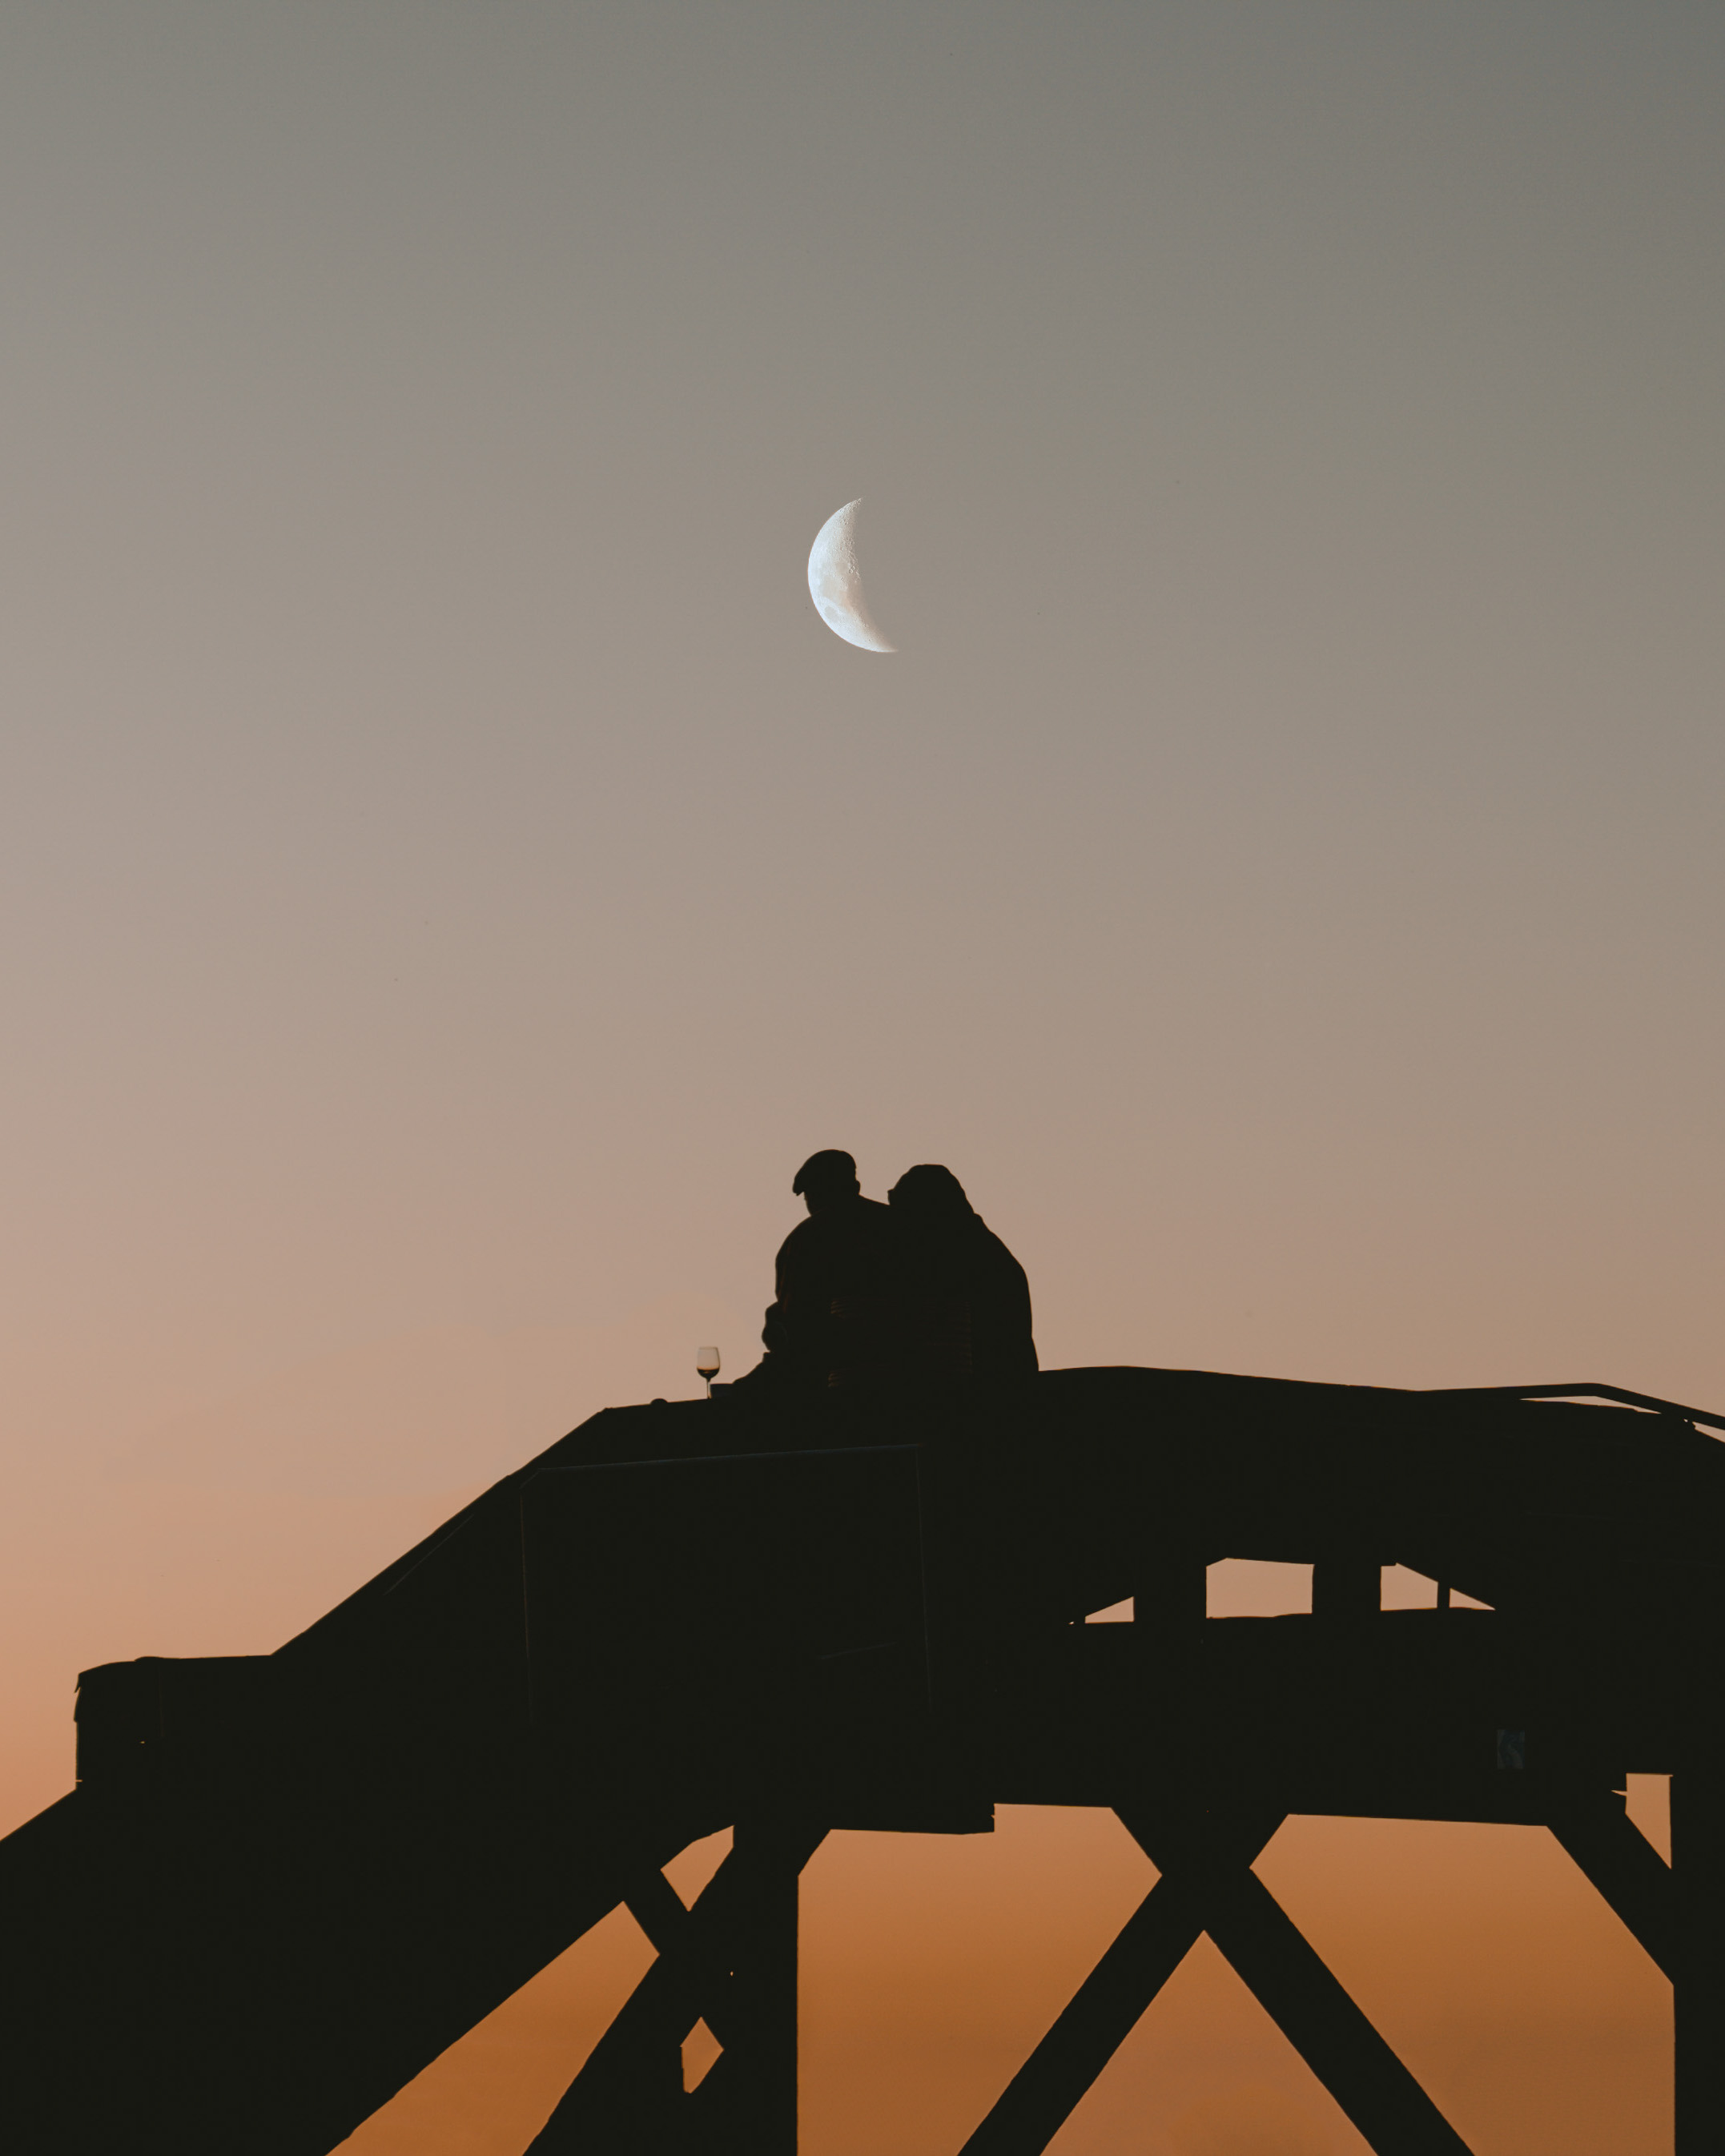 Silhouette of a couple drinking vine while sunset and moon rises above them